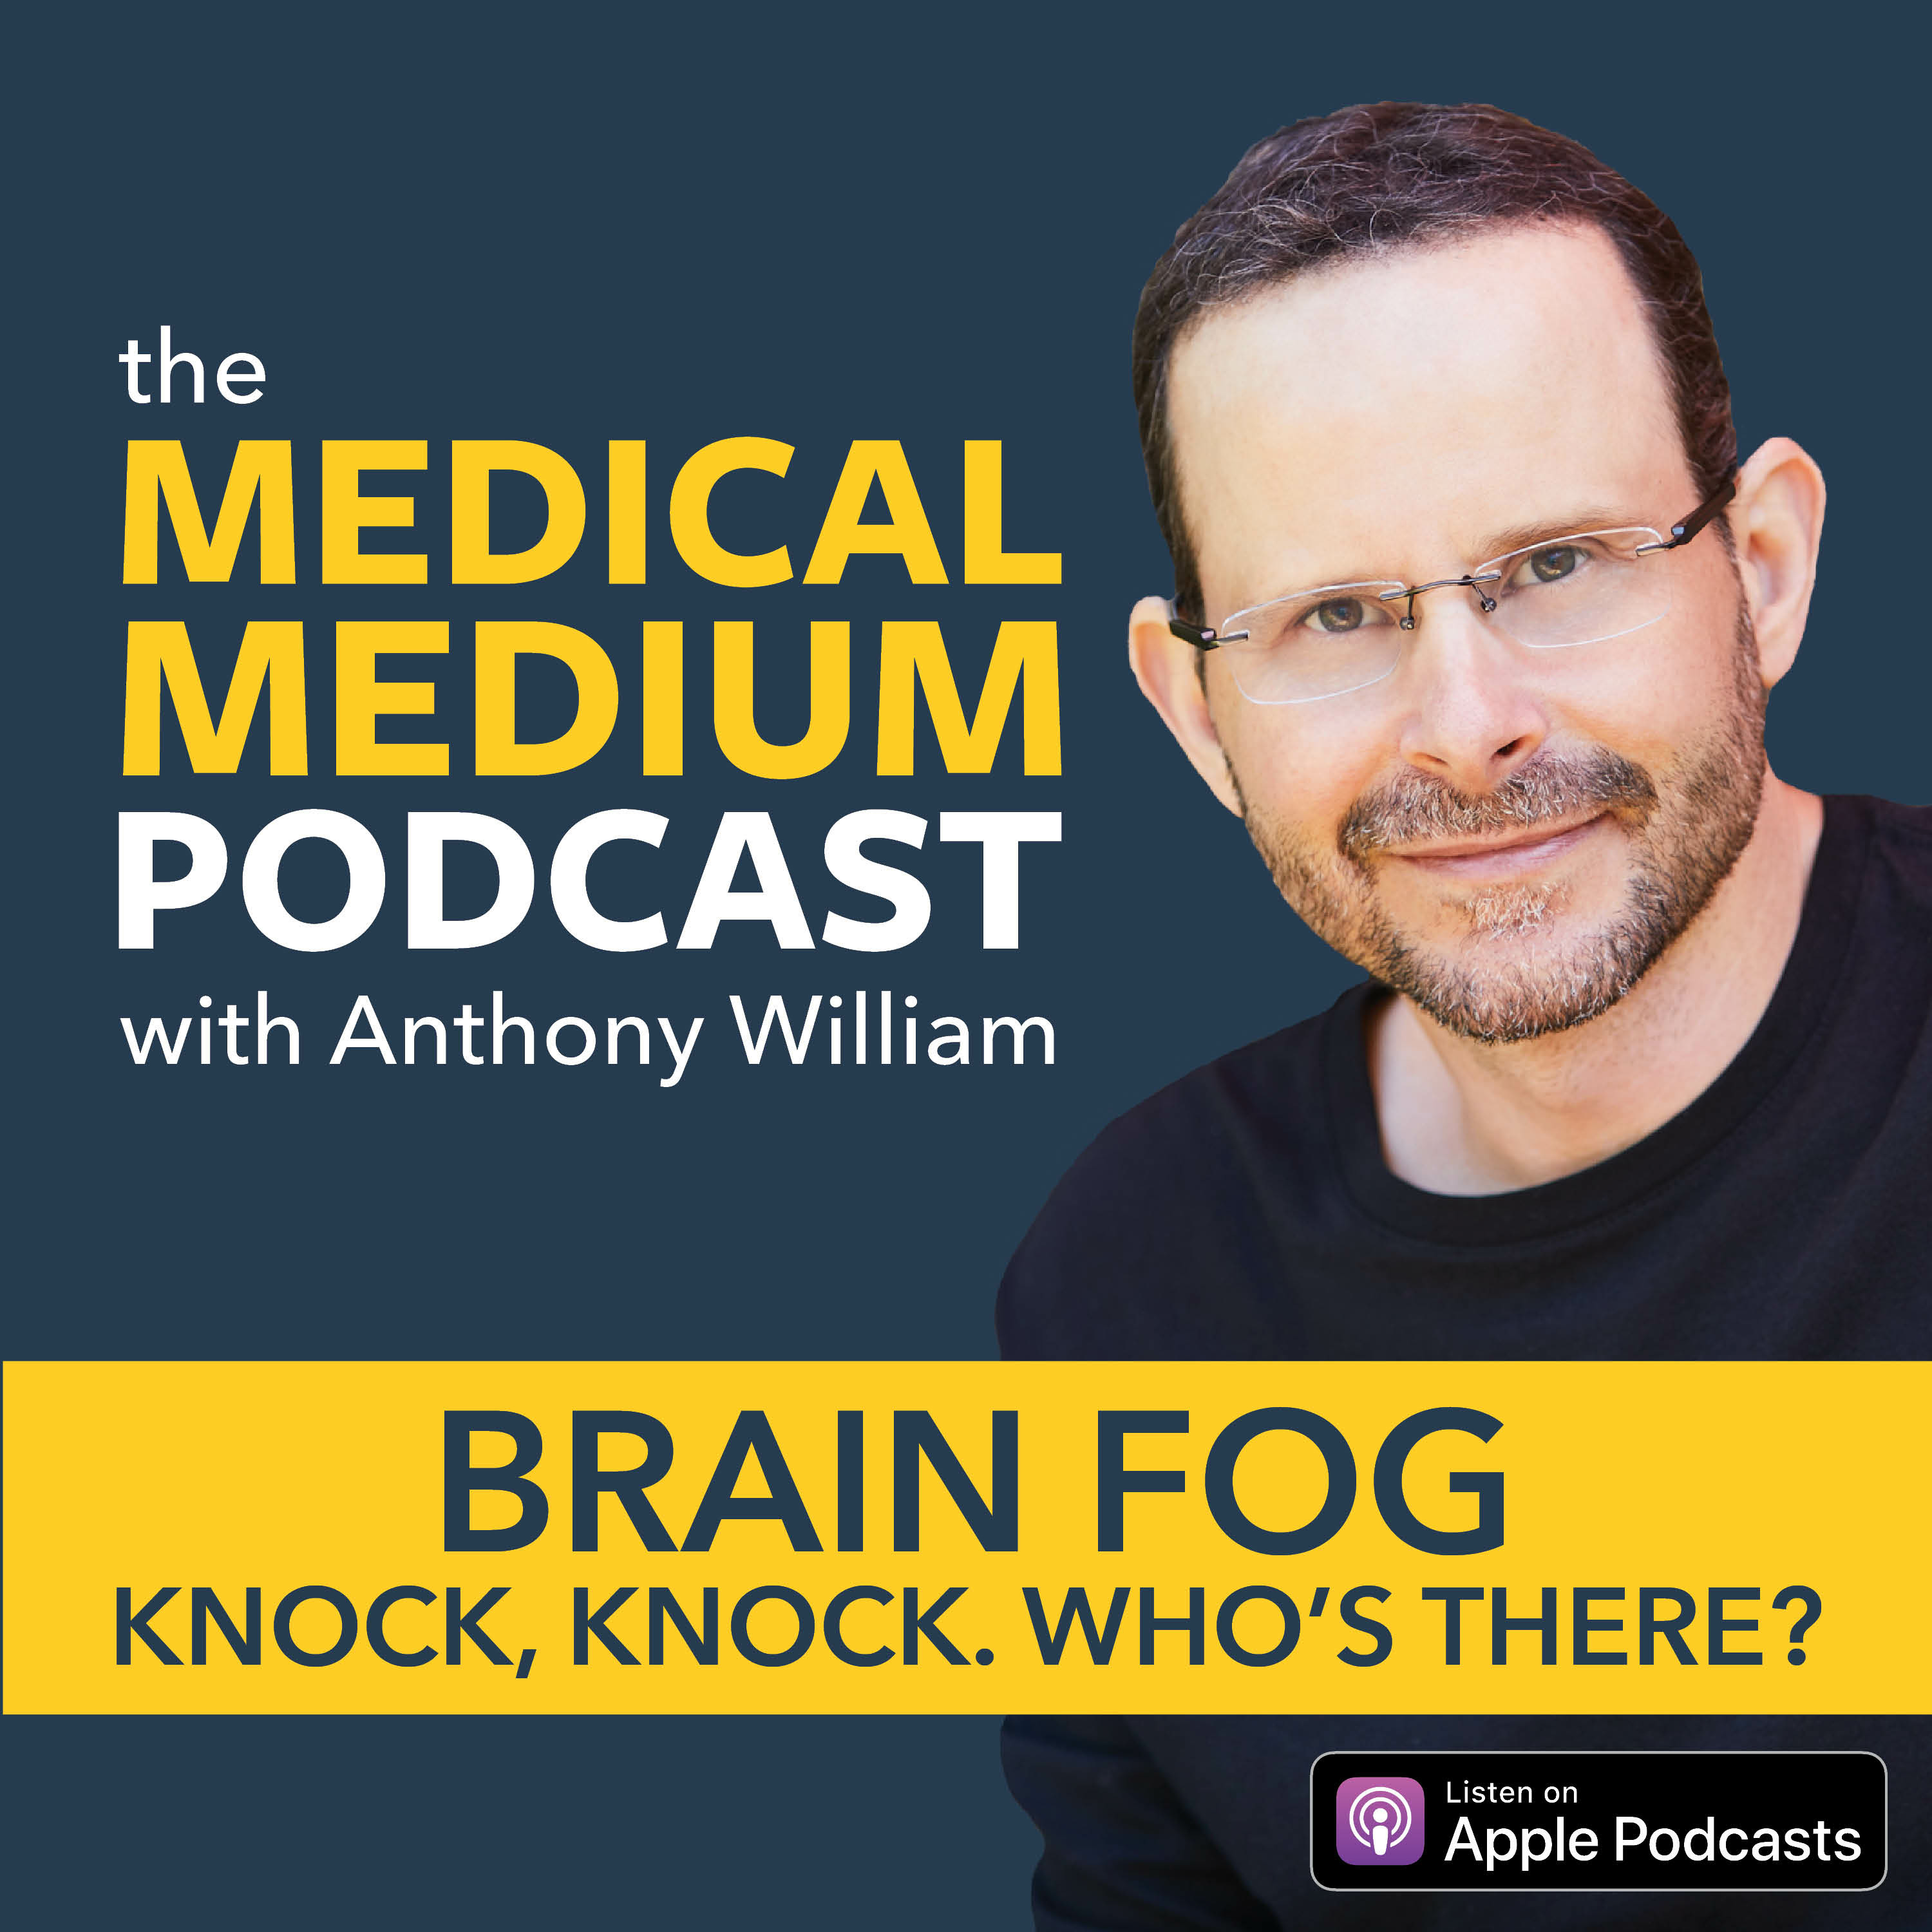 009 Brain Fog: Knock, Knock. Who's There?